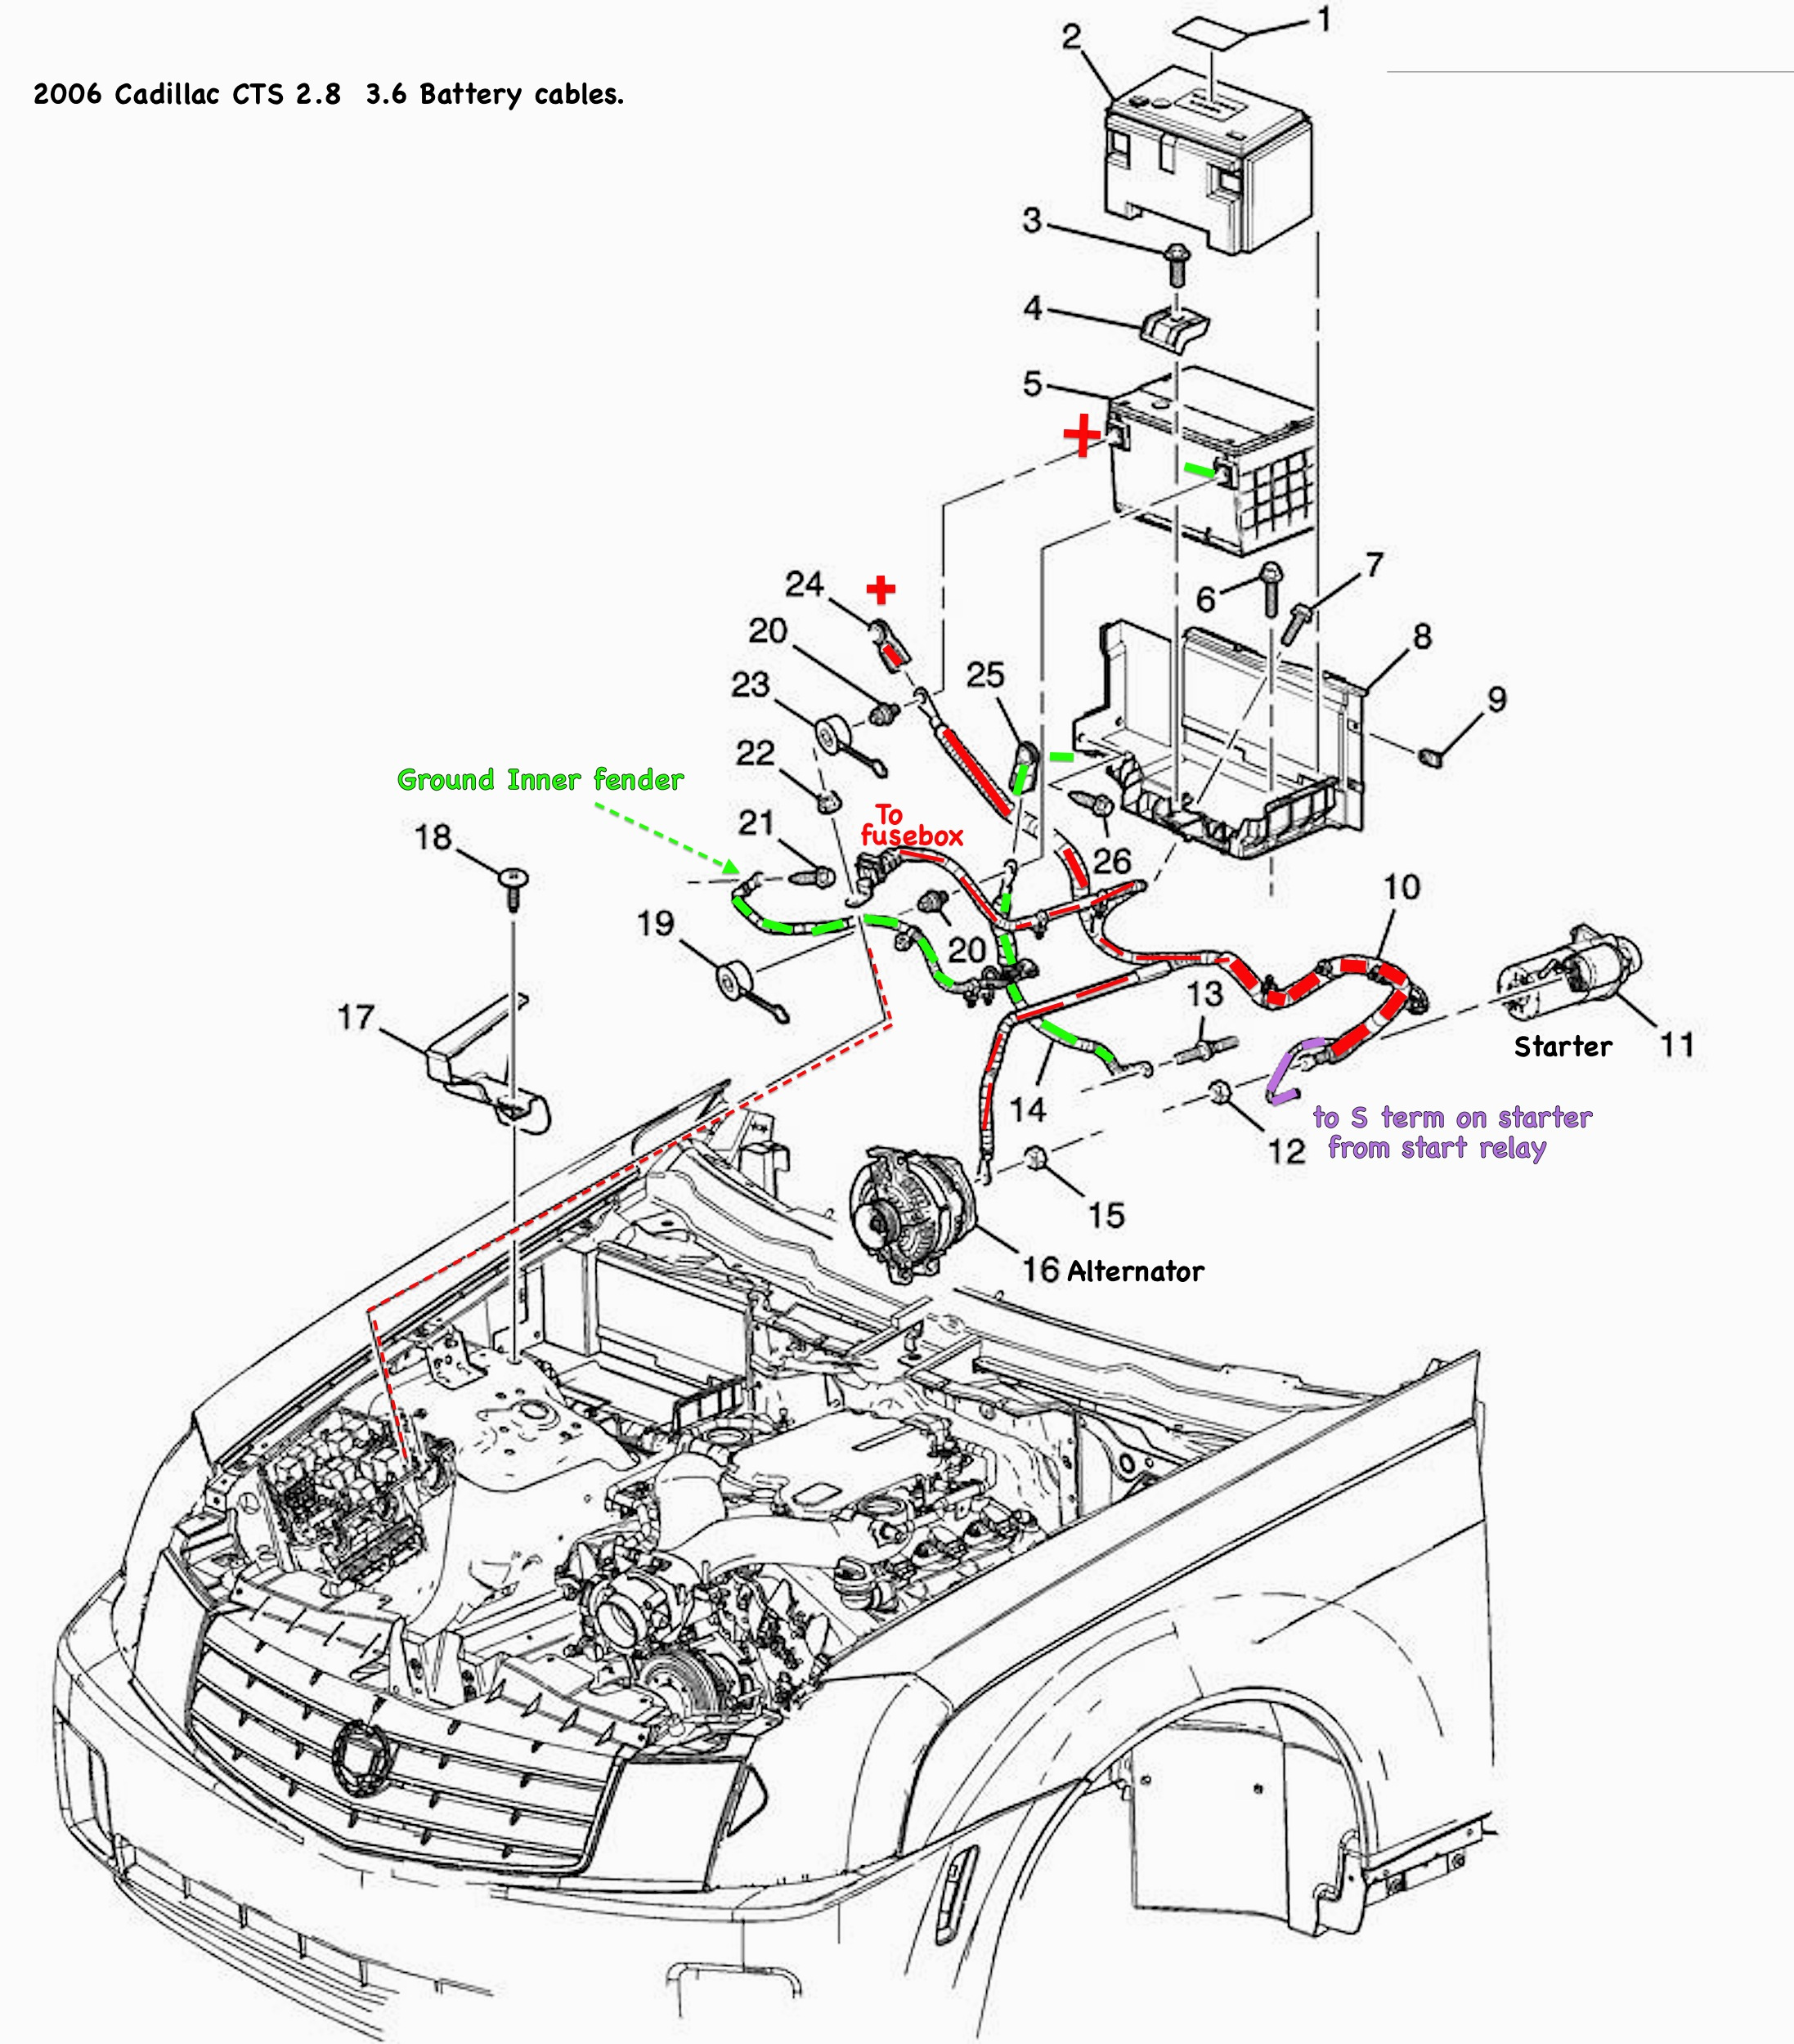 [SCHEMATICS_48IS]  CH_6466] 2006 Cadillac Cts Engine Diagram Schematic Wiring | Cadillac 4 9l Engine Diagram |  | Epete Bios Xempag Awni Jebrp Mohammedshrine Librar Wiring 101